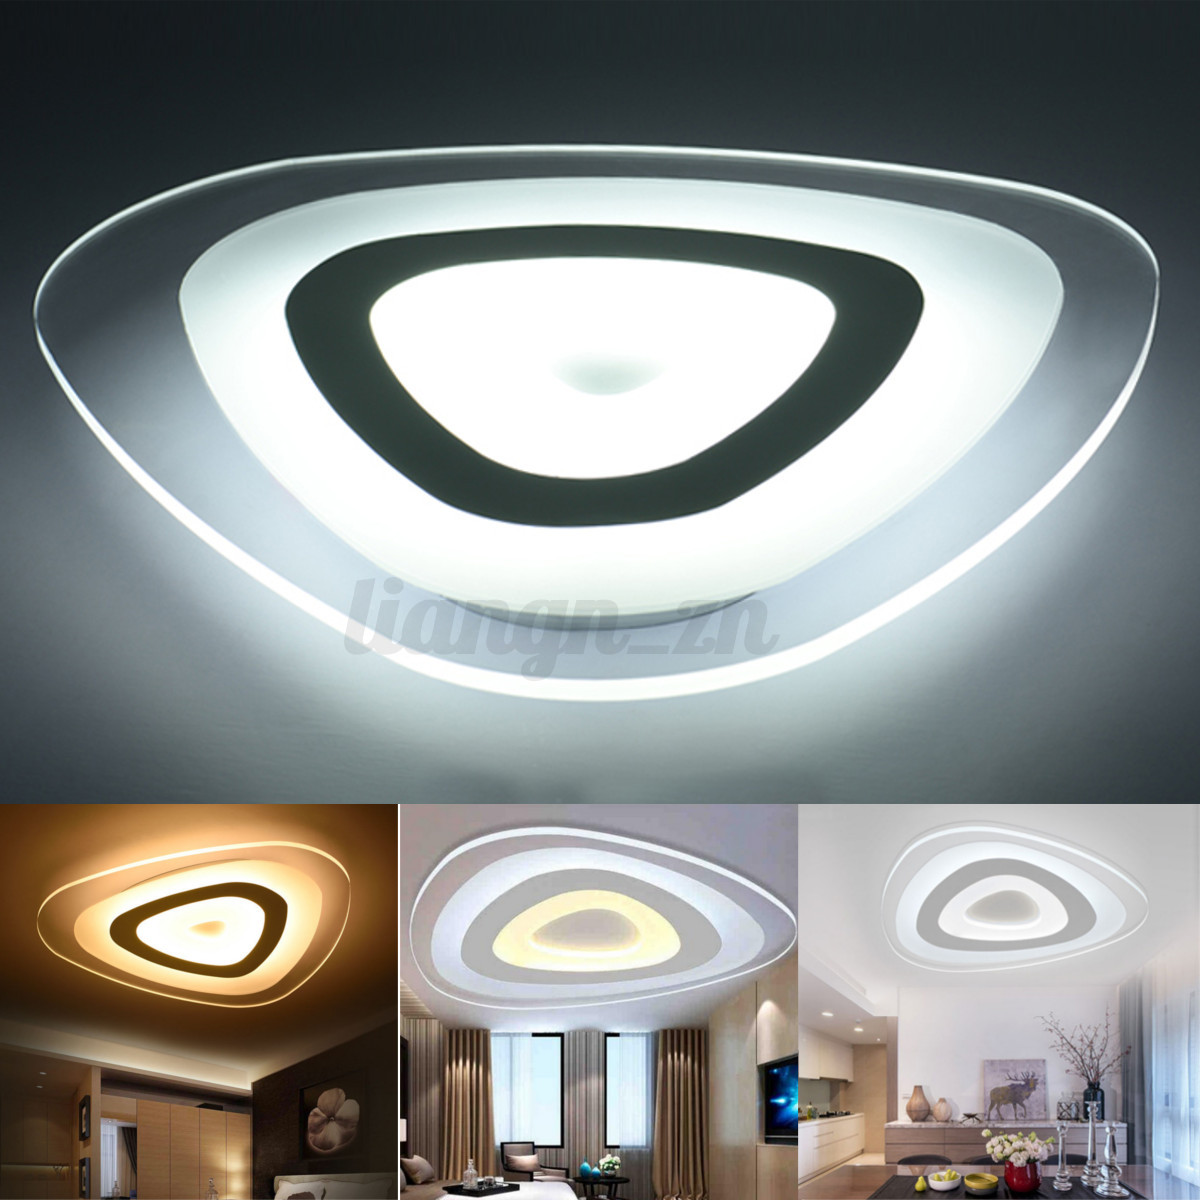 52/40/20cm LED Lamp Flush Mount Ceiling Light Modern Home Living ...